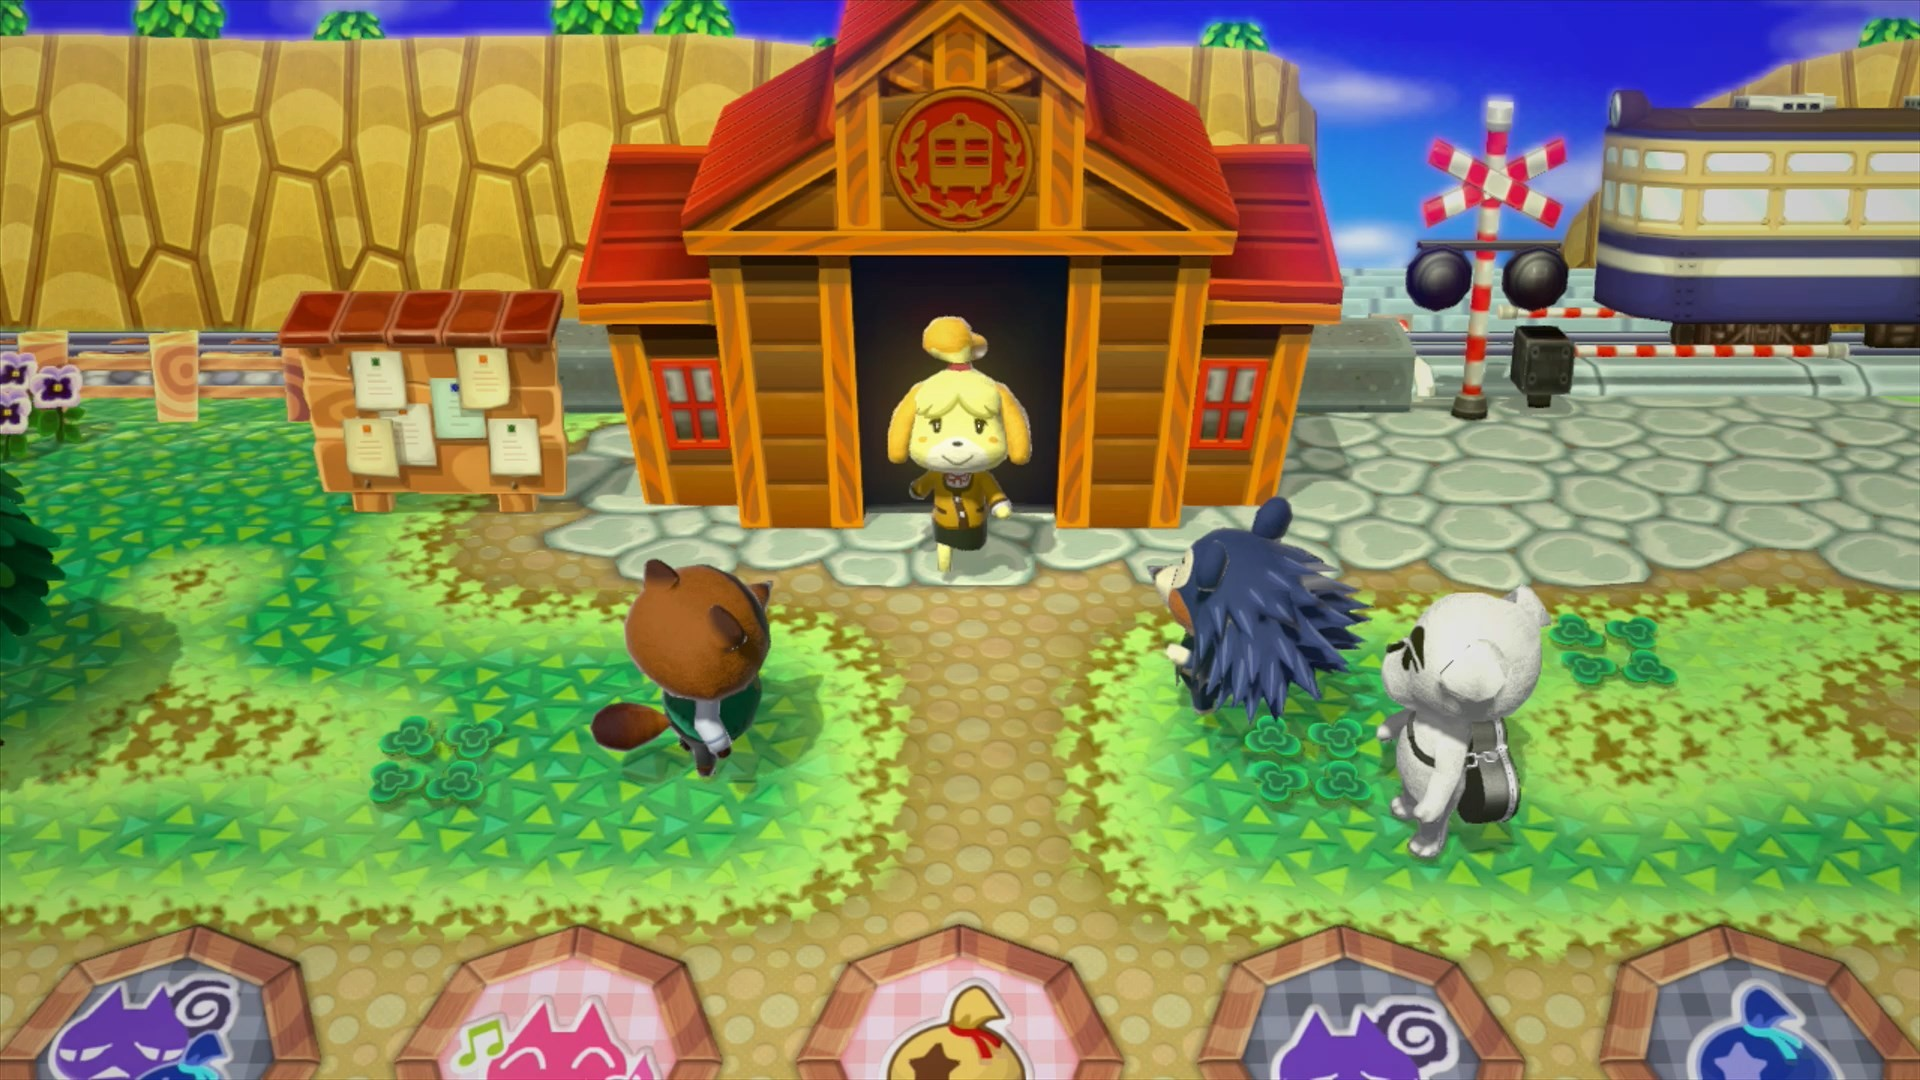 … Mabel, Reese, Cyrus, Tom Nook, K.K. Slider, Isabelle, Mabel, Lottie and  Digby – When you land on a space, a micro-episode of Animal Crossing happens